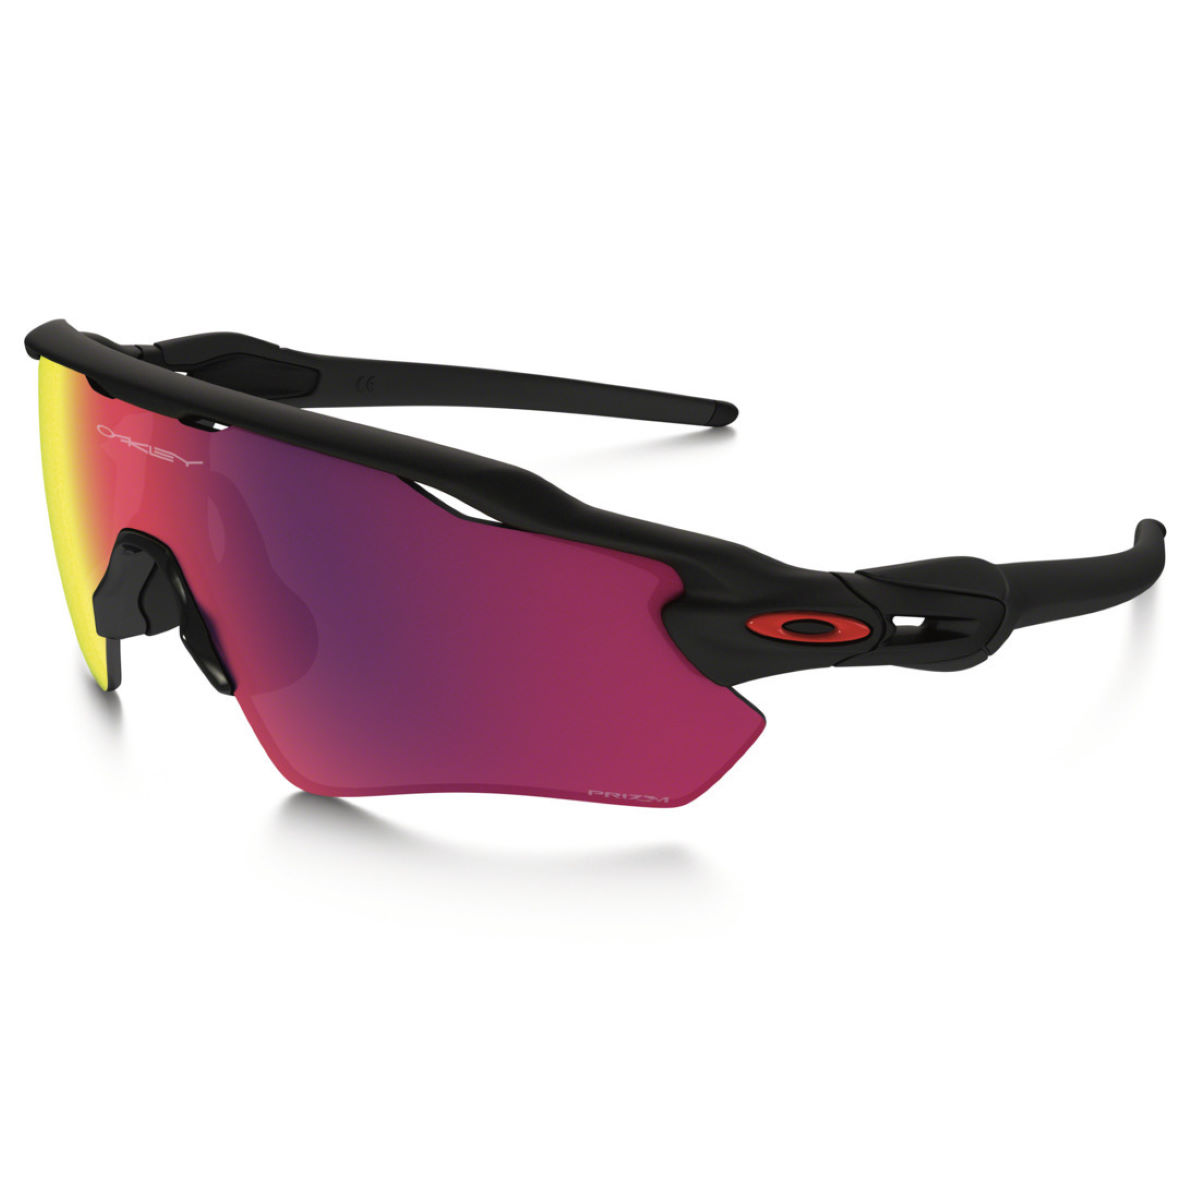 Image of Oakley Radar EV Path Matte Black Prizm Road Sunglasses Sunglasses